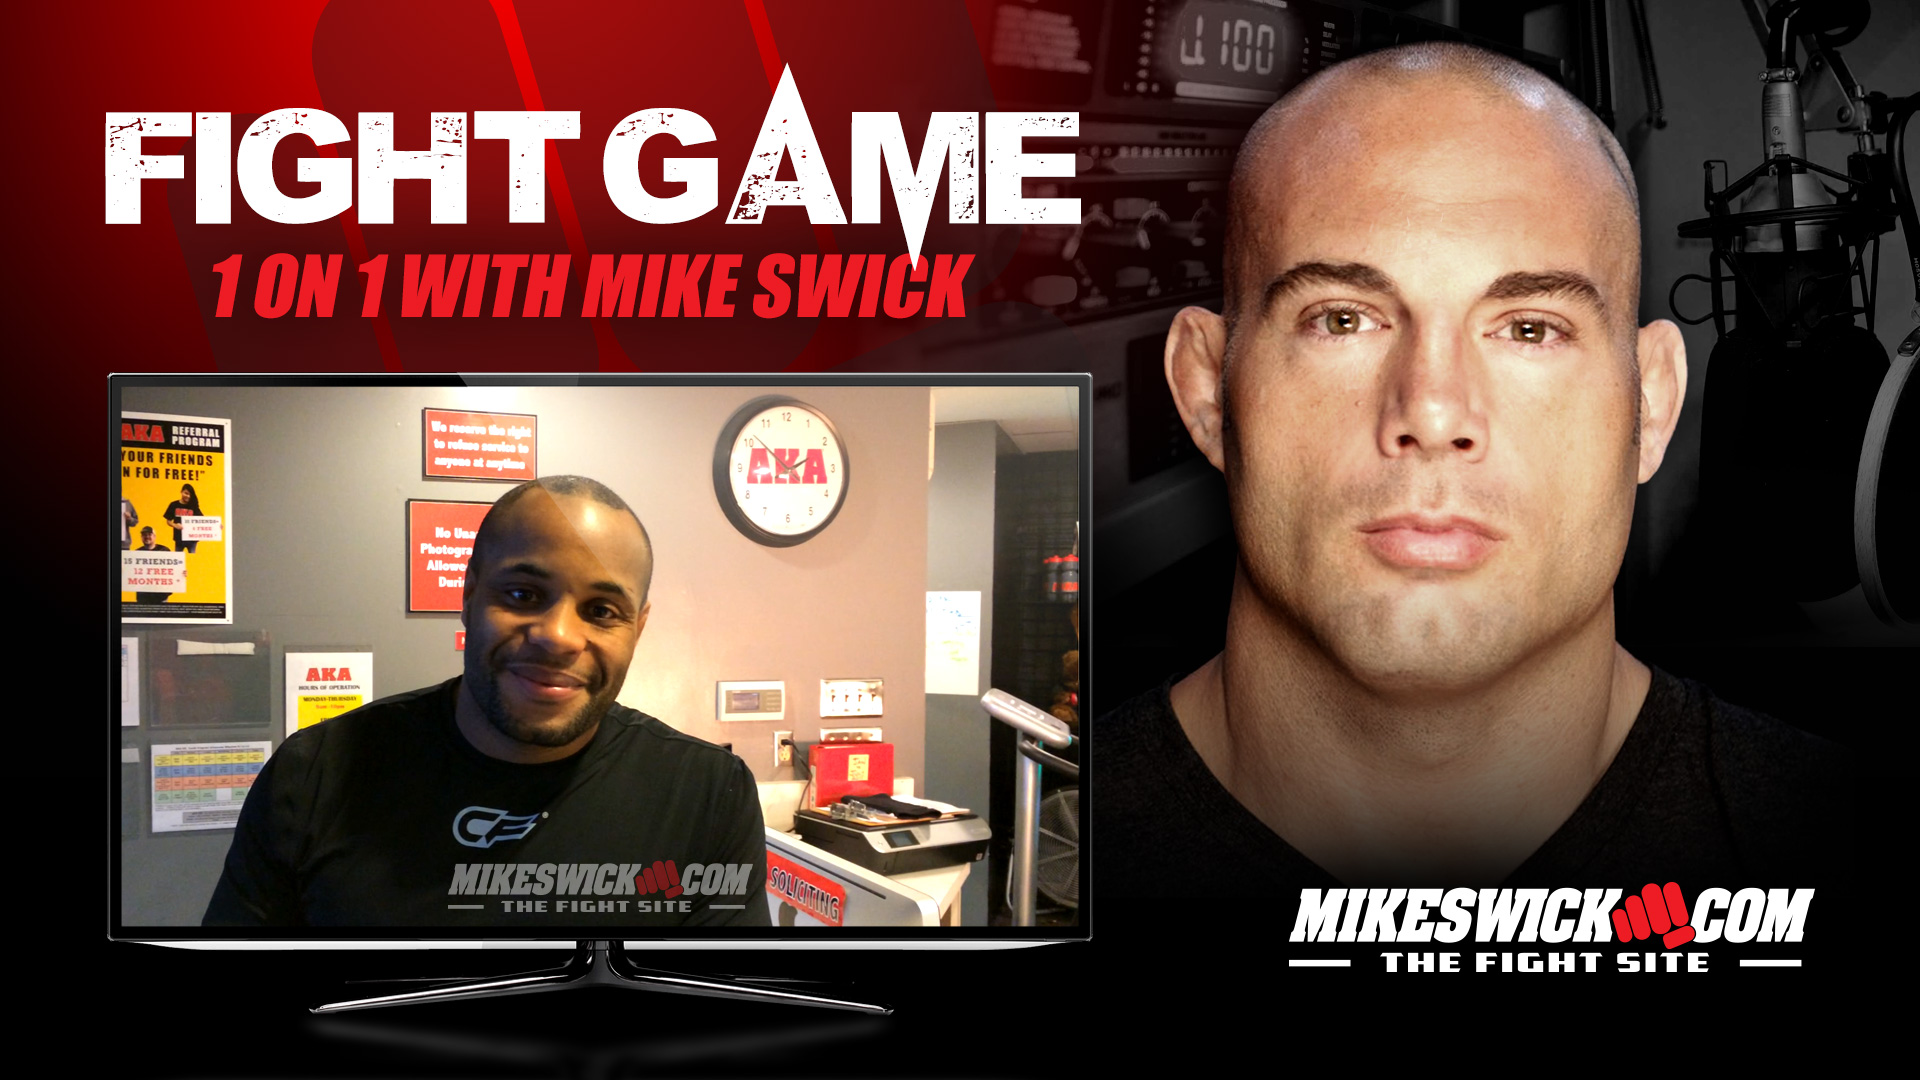 Fight Game 1 on 1 with Mike Swick